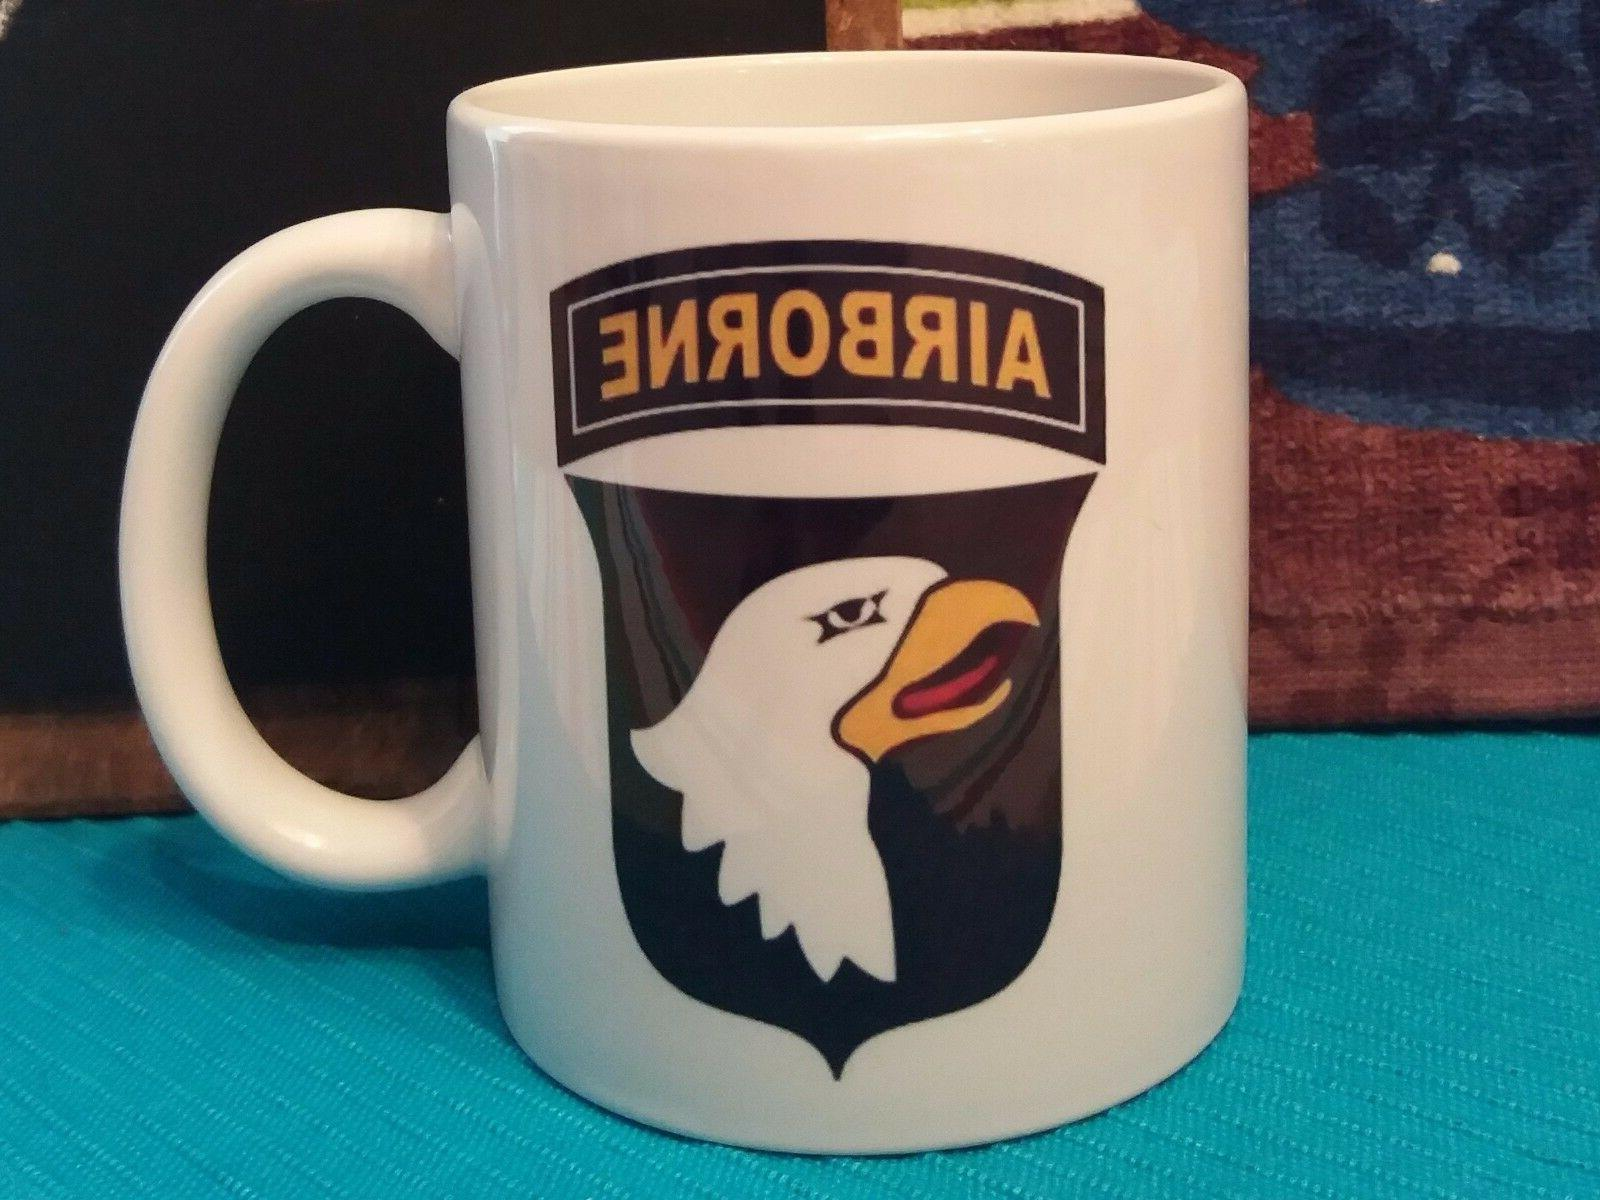 101st airborne division patch classic coffee mug